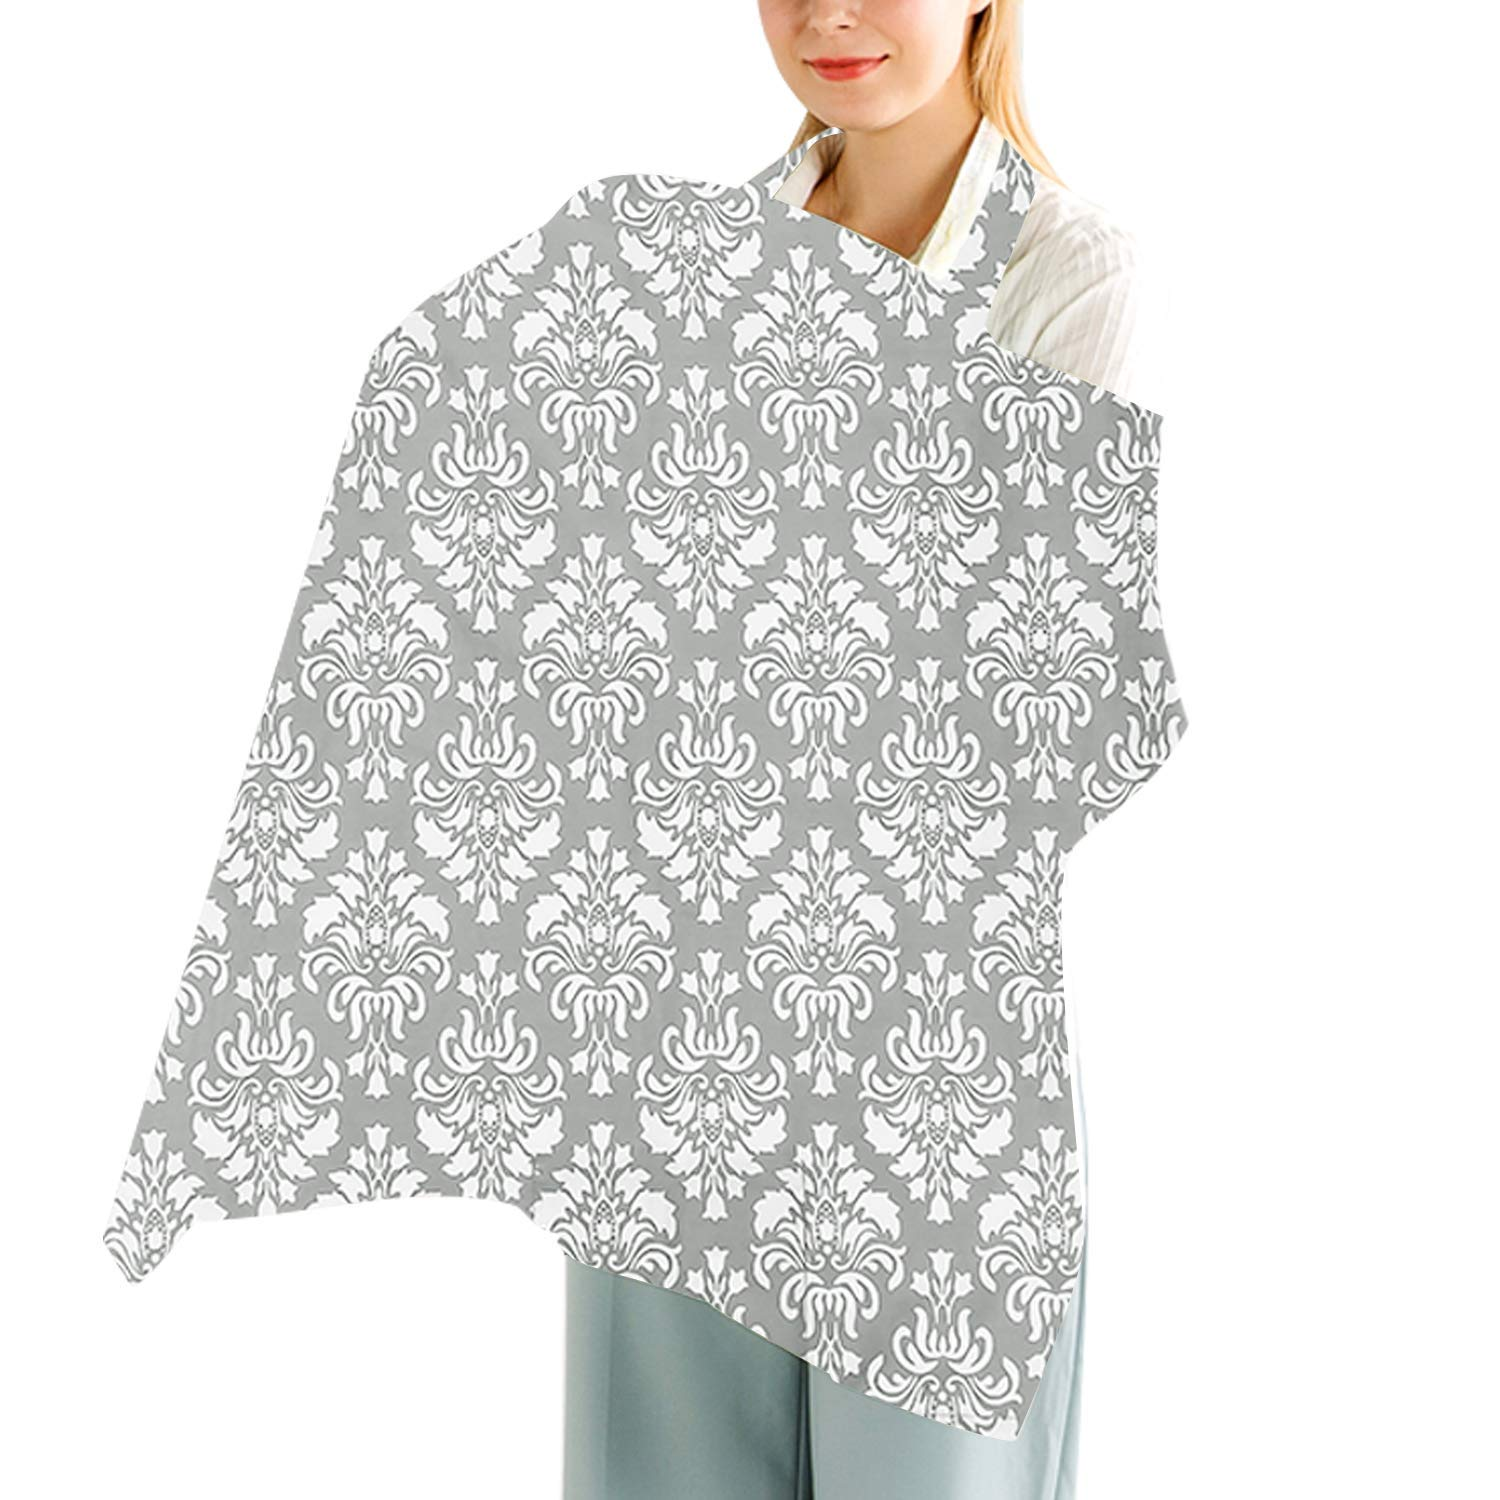 Wide Privacy Hider for Moms Baby Breastfeeding Covers White Soft Breathable 100/% Cotton Cover Design with Sewn in Burp Cloth for Breastfeeding Babies Cok Nursing Cover